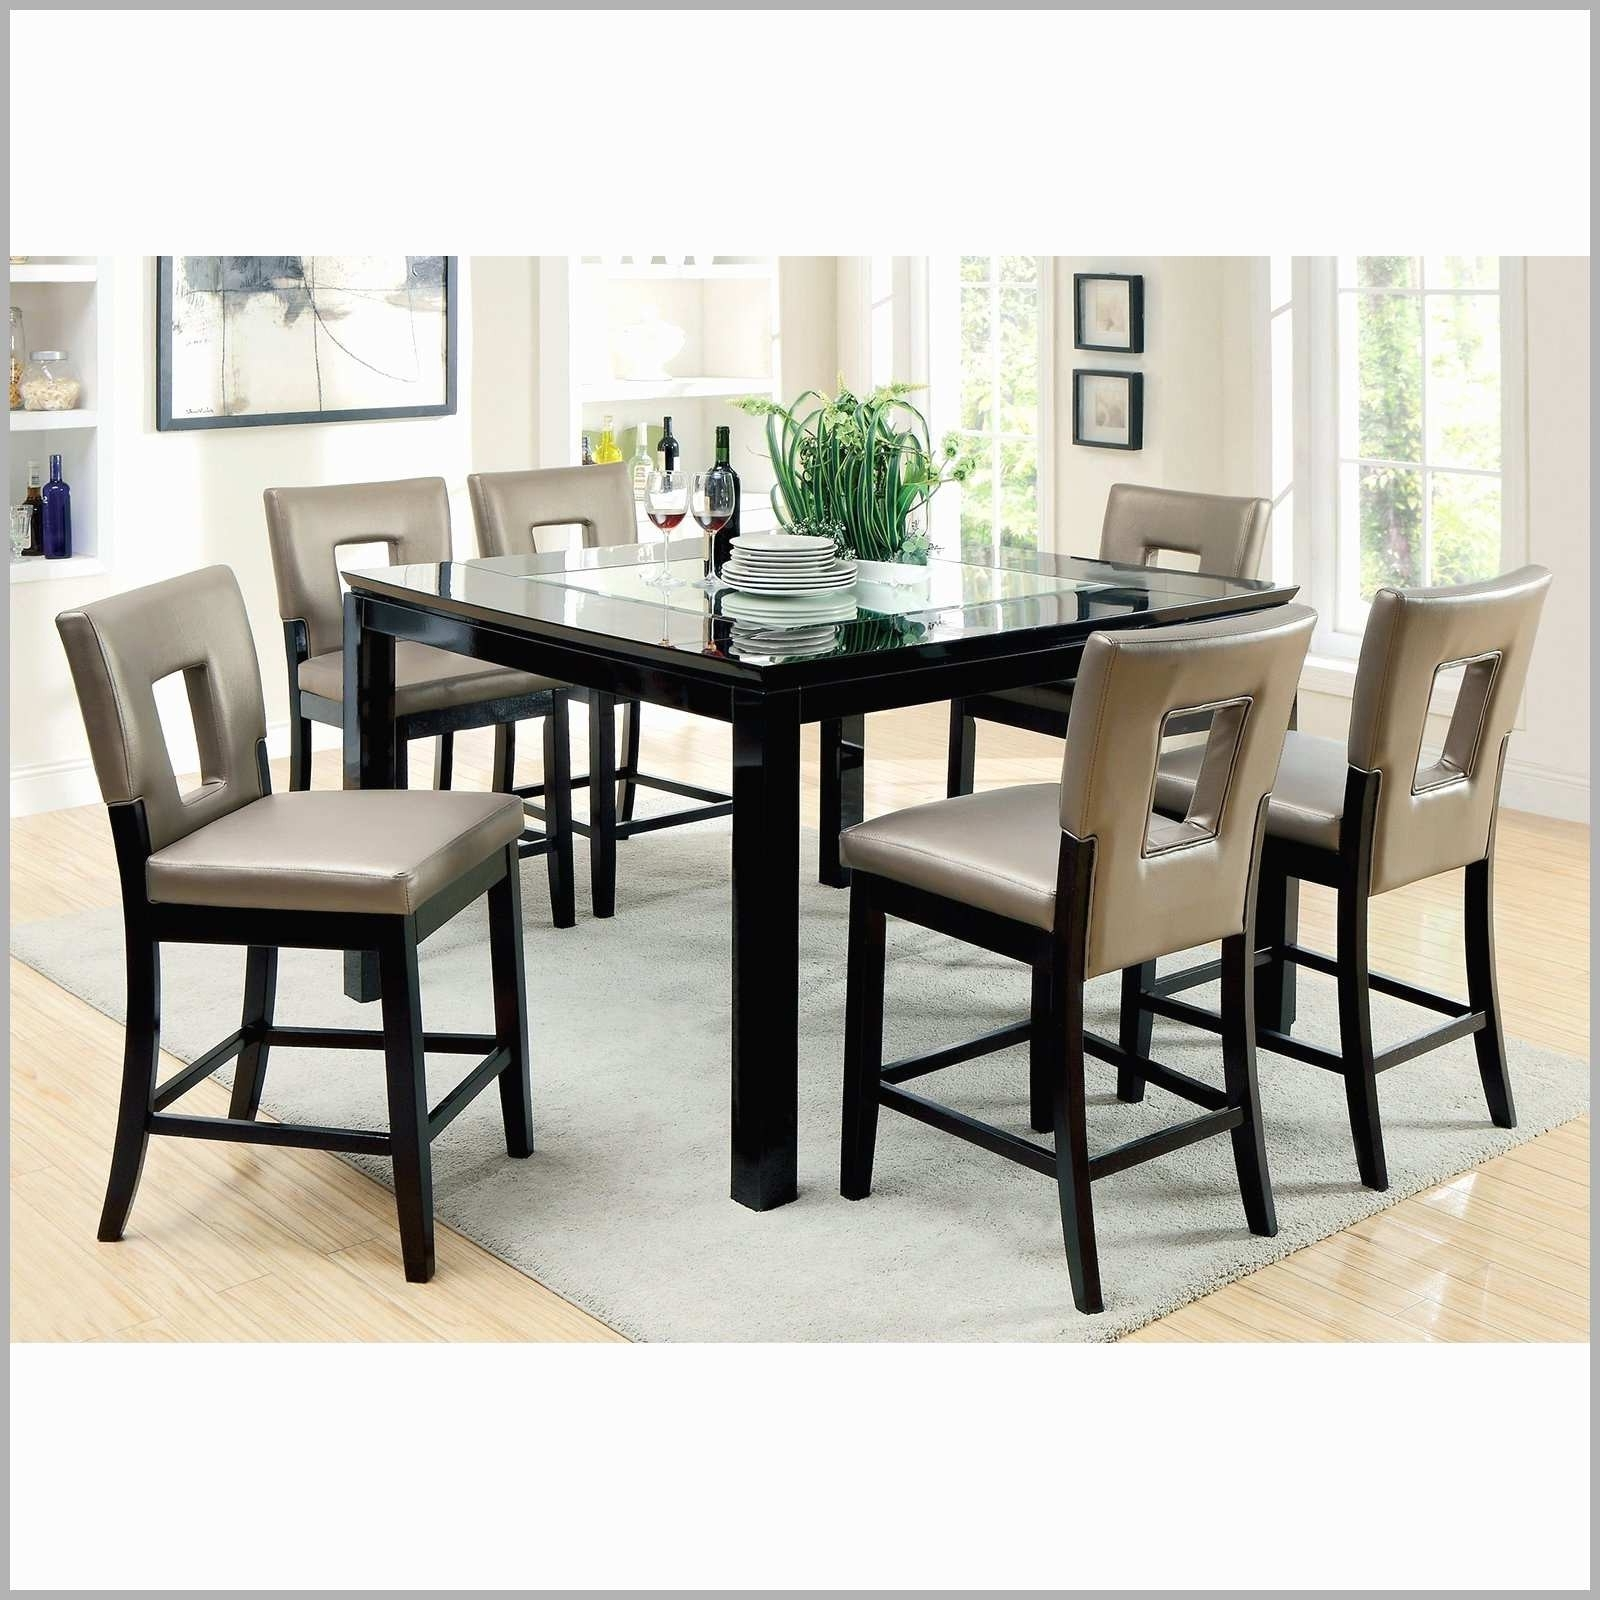 Widely Used White High Gloss Extending Dining Table Luxury 8 Seater Dining Table For 8 Seater White Dining Tables (View 9 of 25)